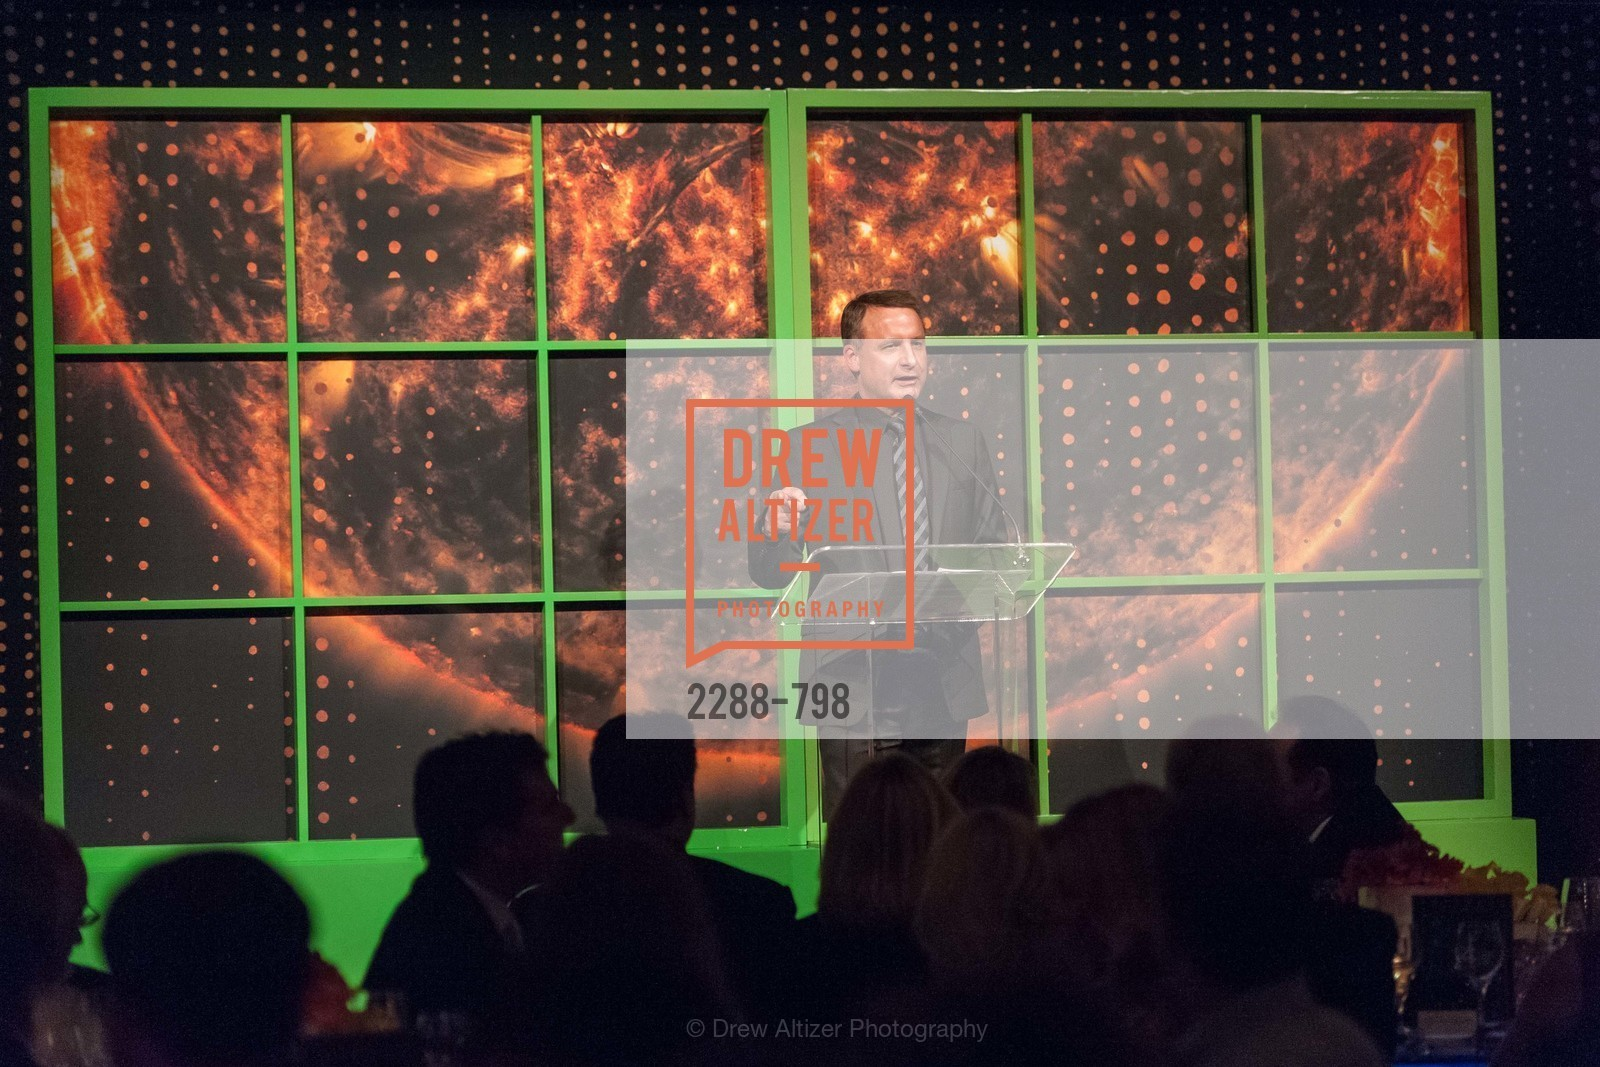 Jon Foley, CALIFORNIA ACADEMY OF SCIENCES - Big Bang Gala 2015, US, April 24th, 2015,Drew Altizer, Drew Altizer Photography, full-service agency, private events, San Francisco photographer, photographer california